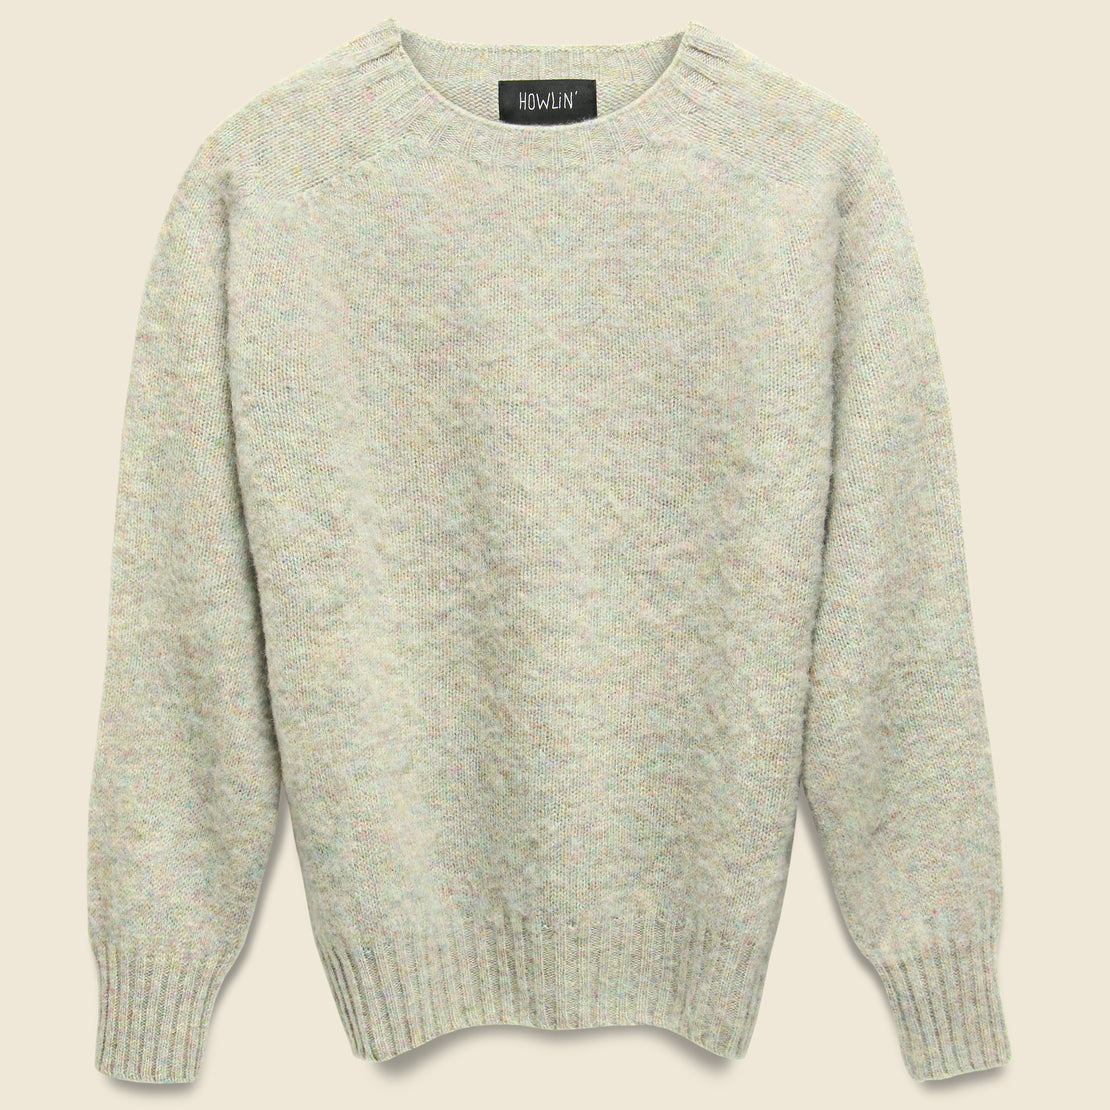 Howlin Babs Sweater - Galaxy